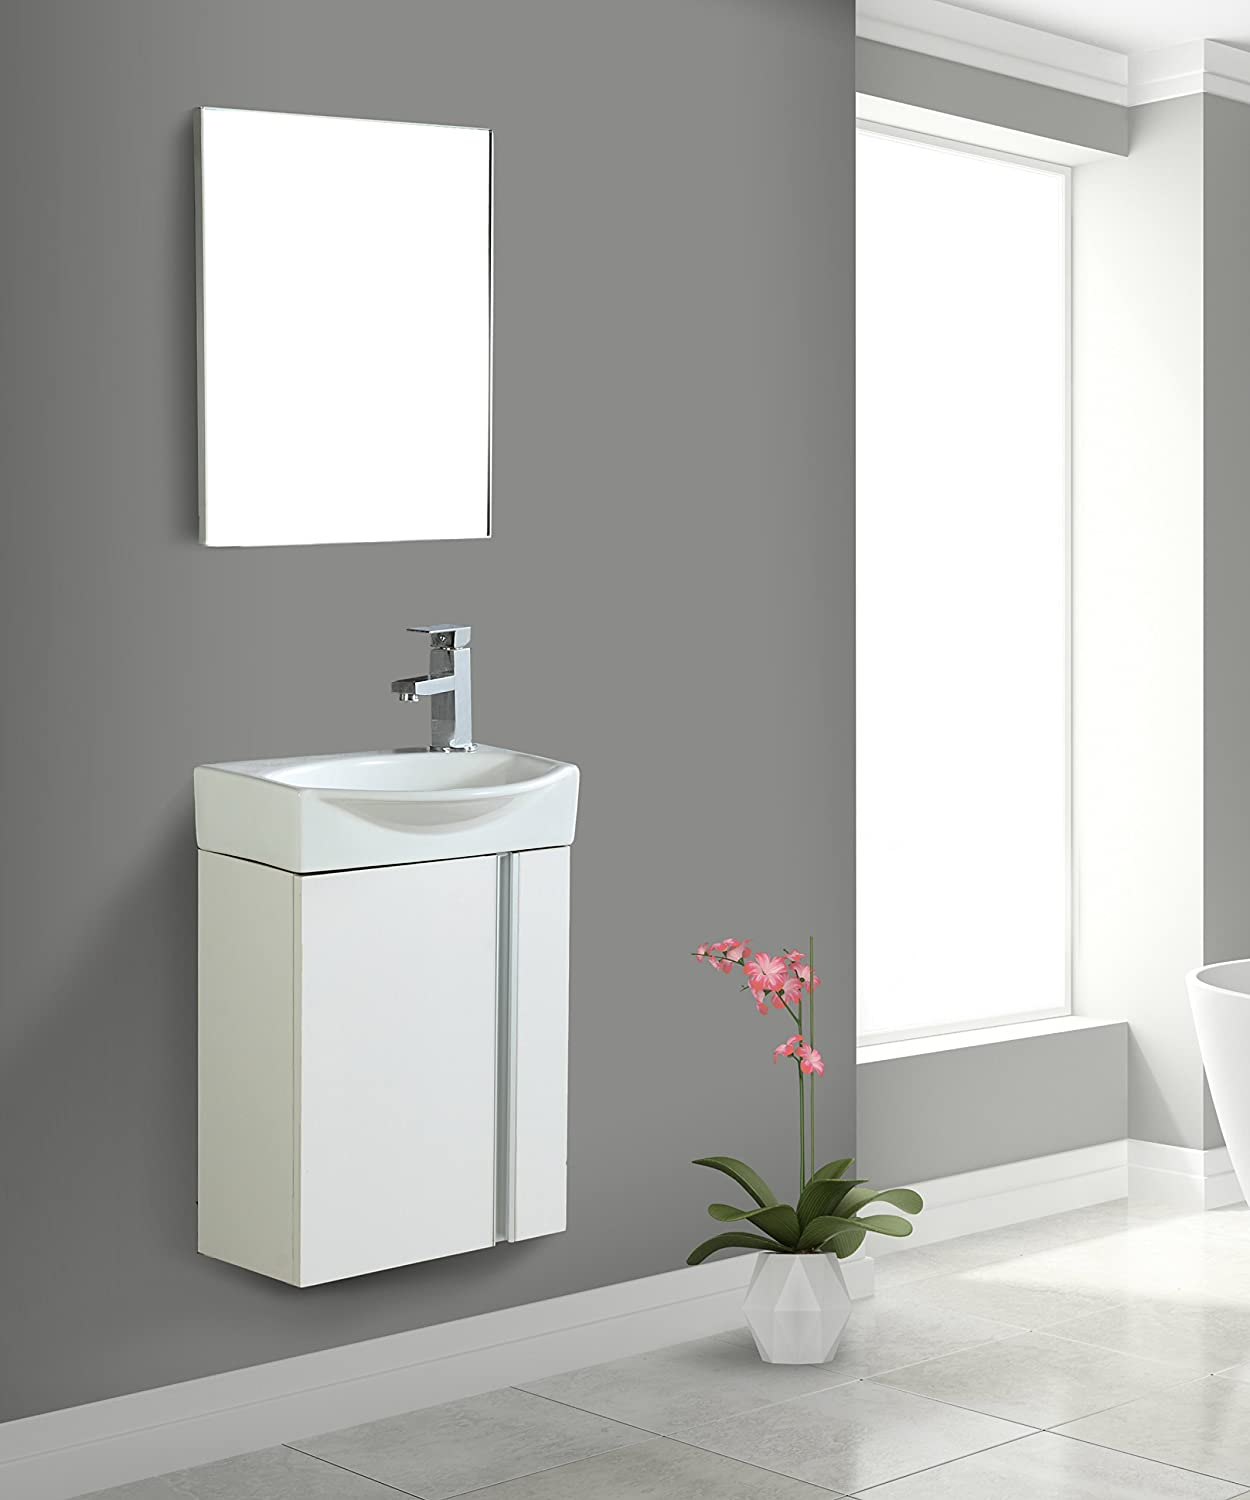 . Fine Fixtures Compacto Small Bathroom Vanity Set With Sink  Wall Hung  Cabinet  Sink top  And Mirror Included  White